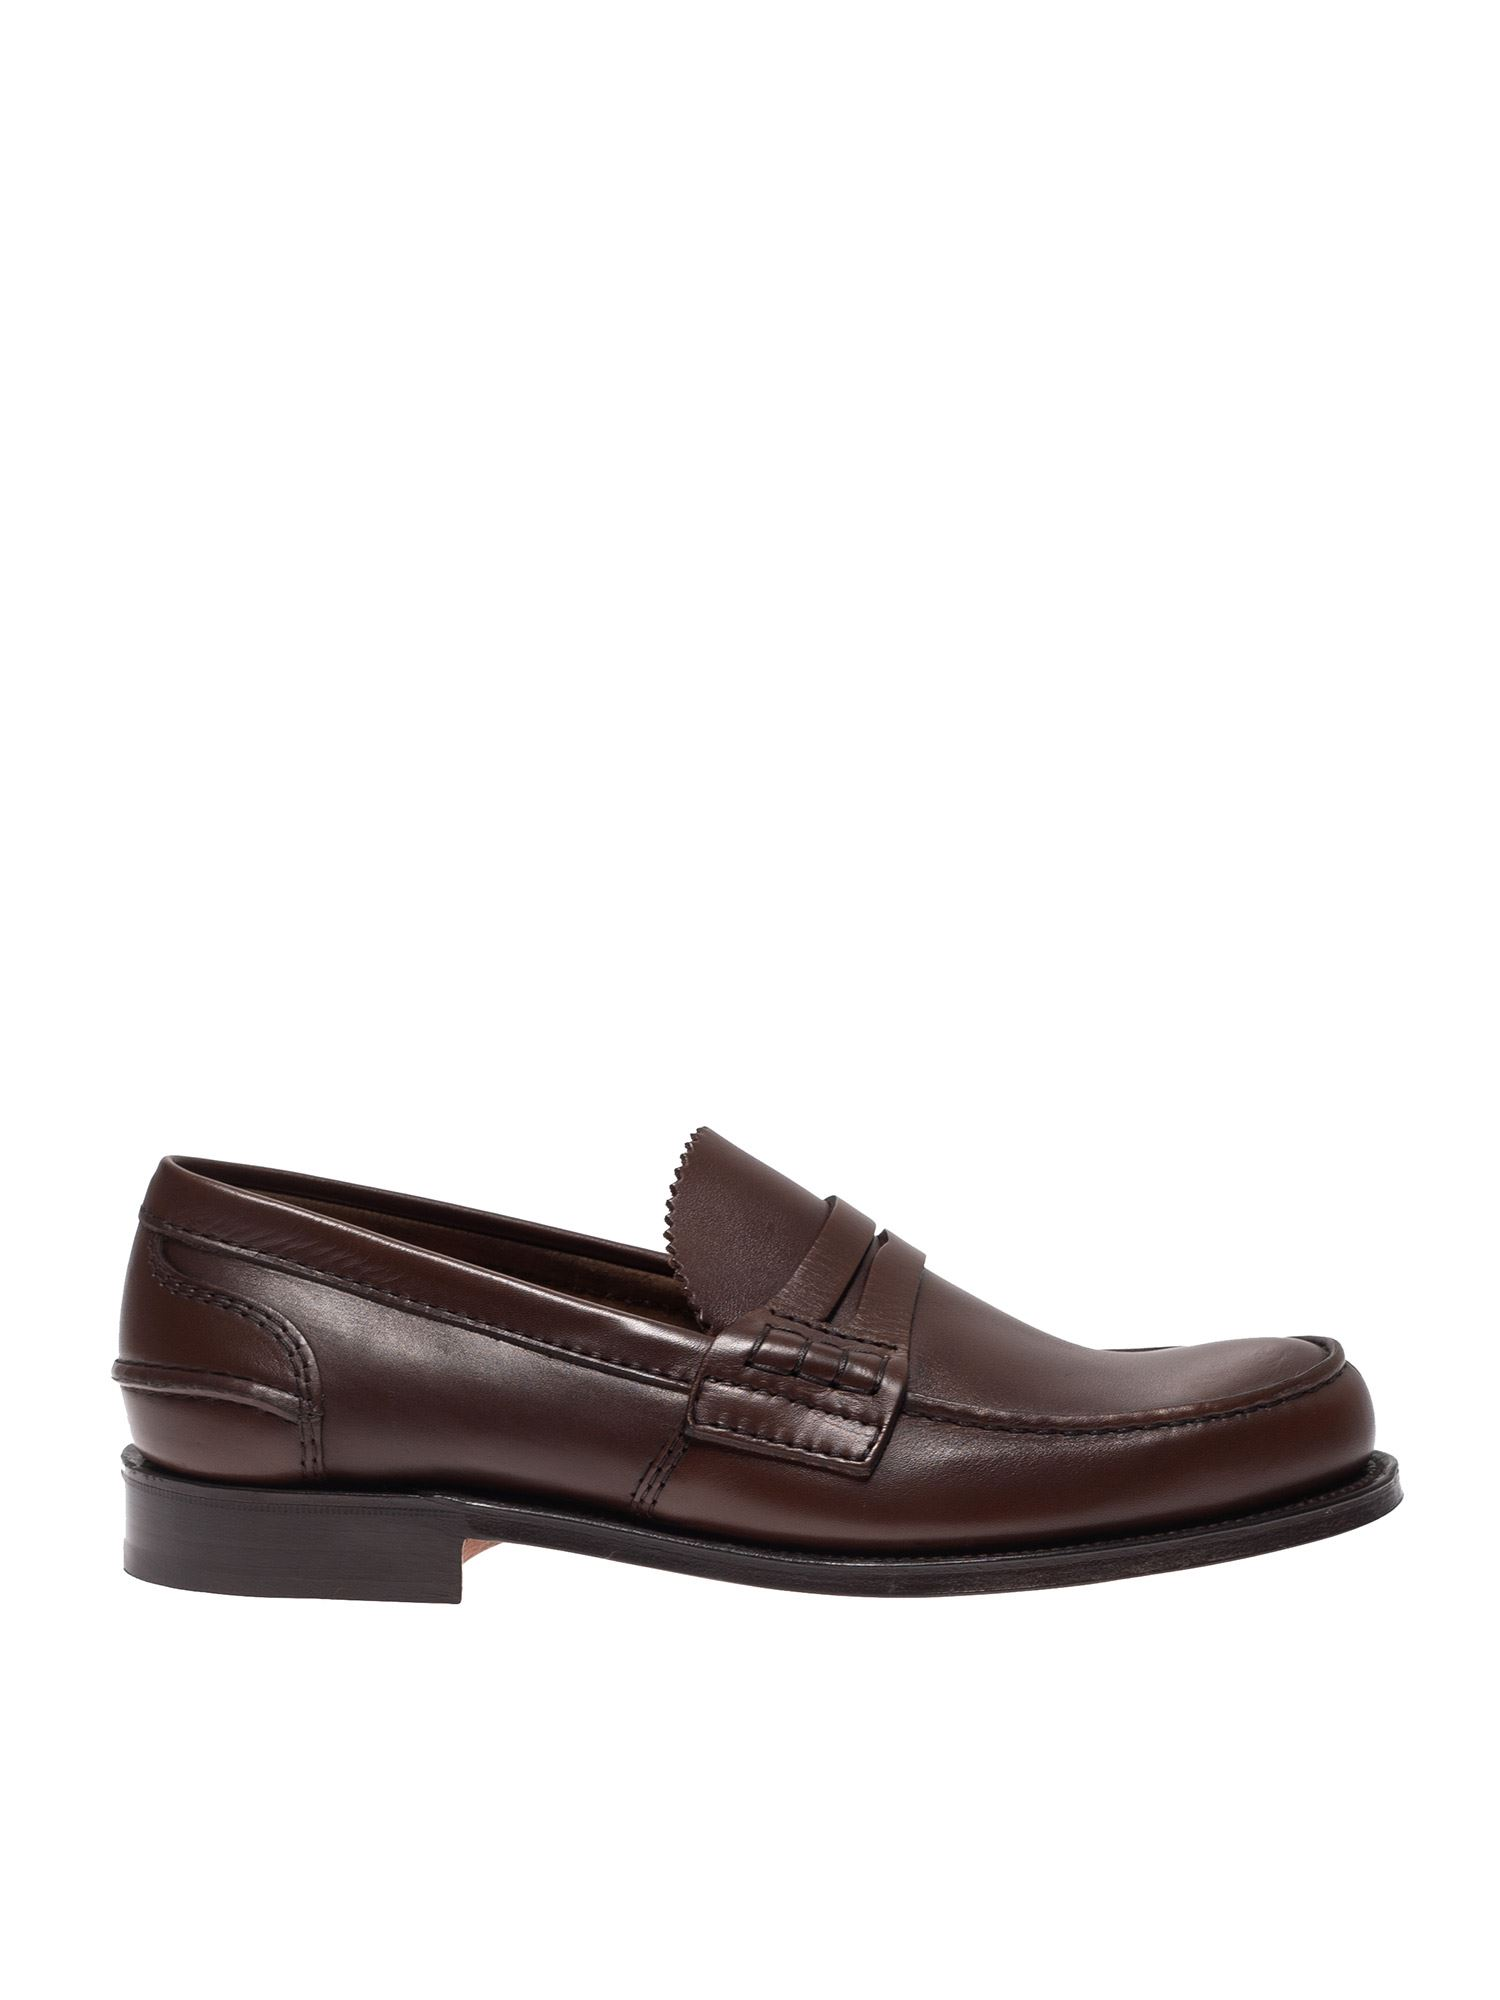 Church's PEMBREY LOAFERS IN BROWN